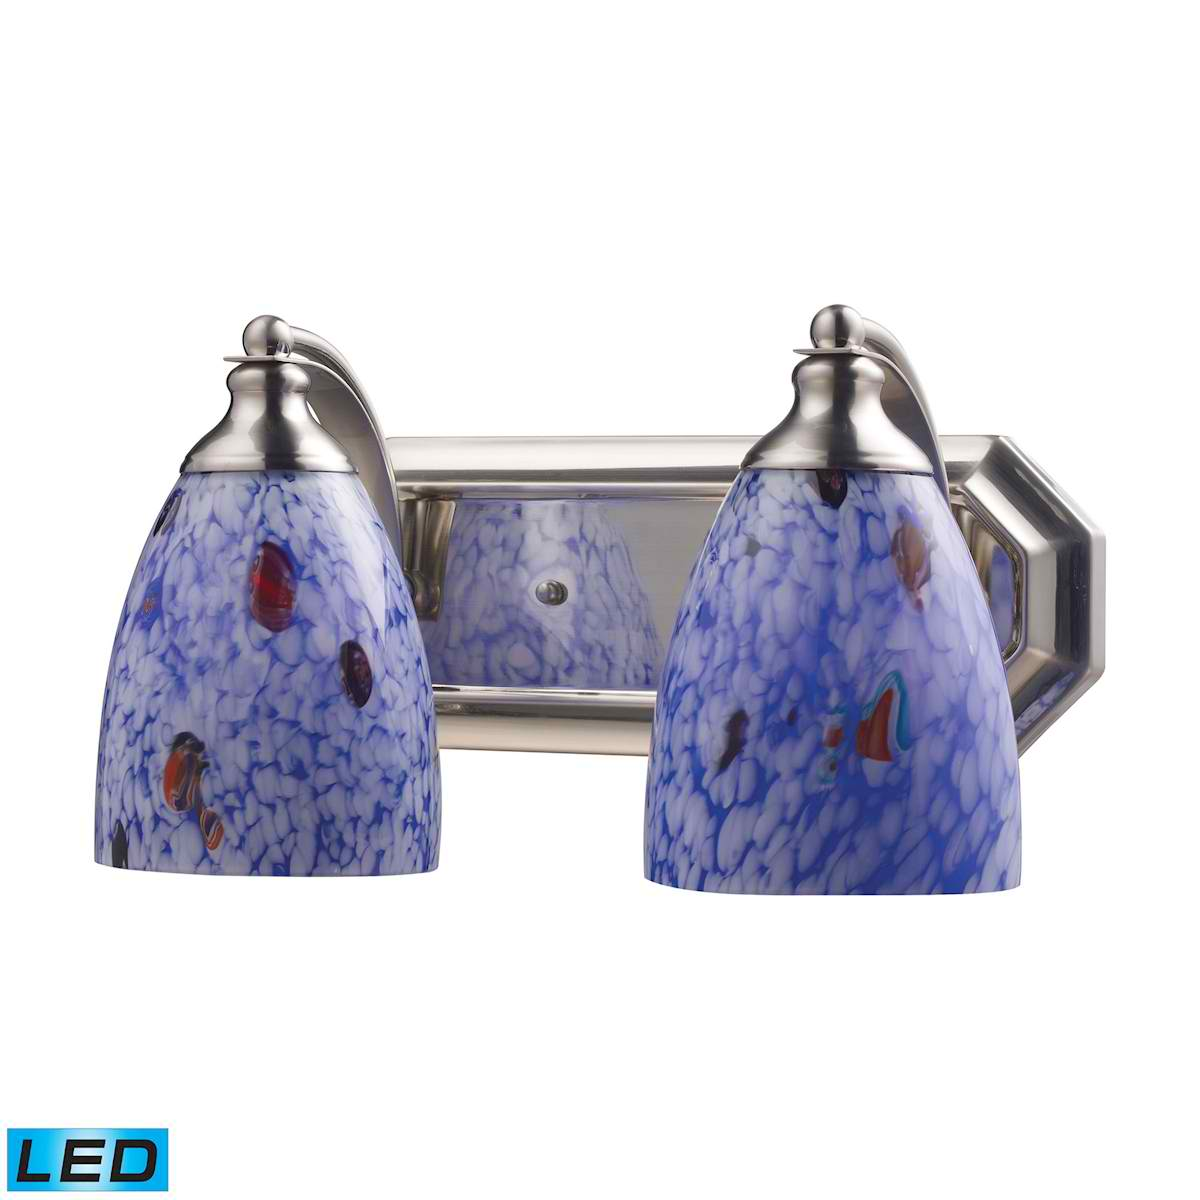 2 Light Vanity in Satin Nickel and Starburst Blue Glass - LED, 800 Lumens (1600 Lumens Total) with Full Scale